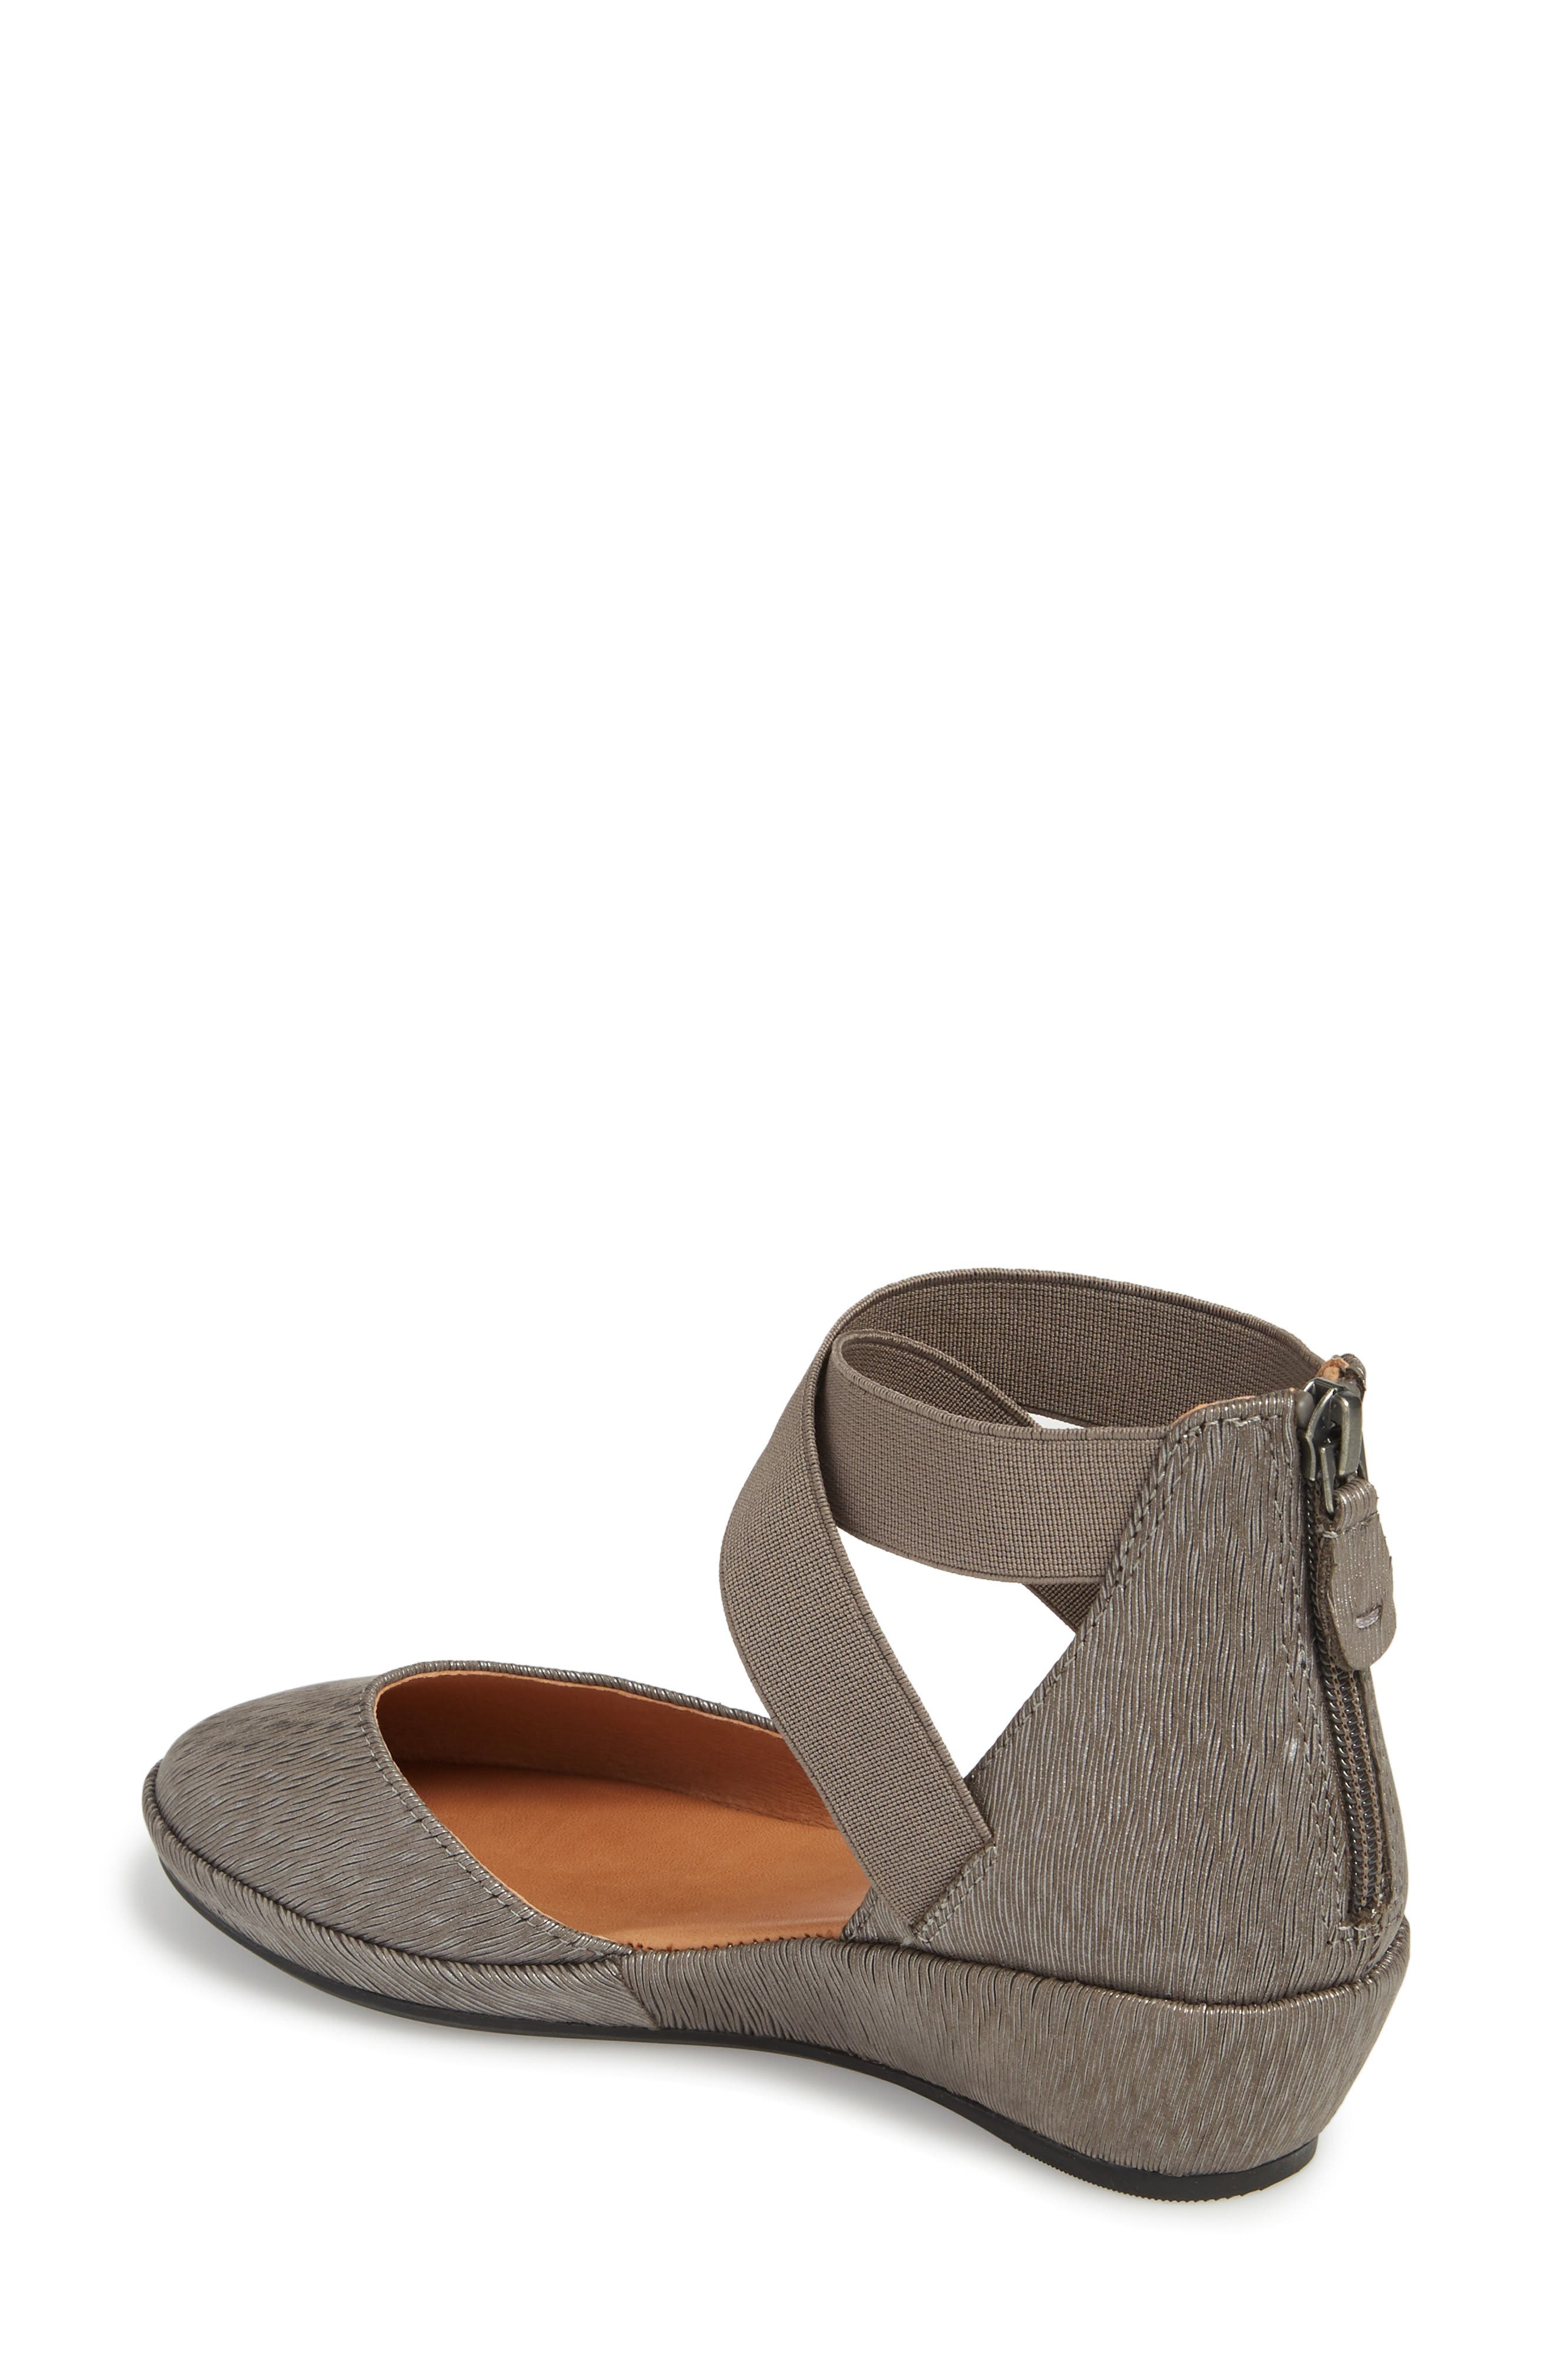 by Kenneth Cole 'Noa' Elastic Strap d'Orsay Sandal,                             Alternate thumbnail 2, color,                             Ash Embossed Leather